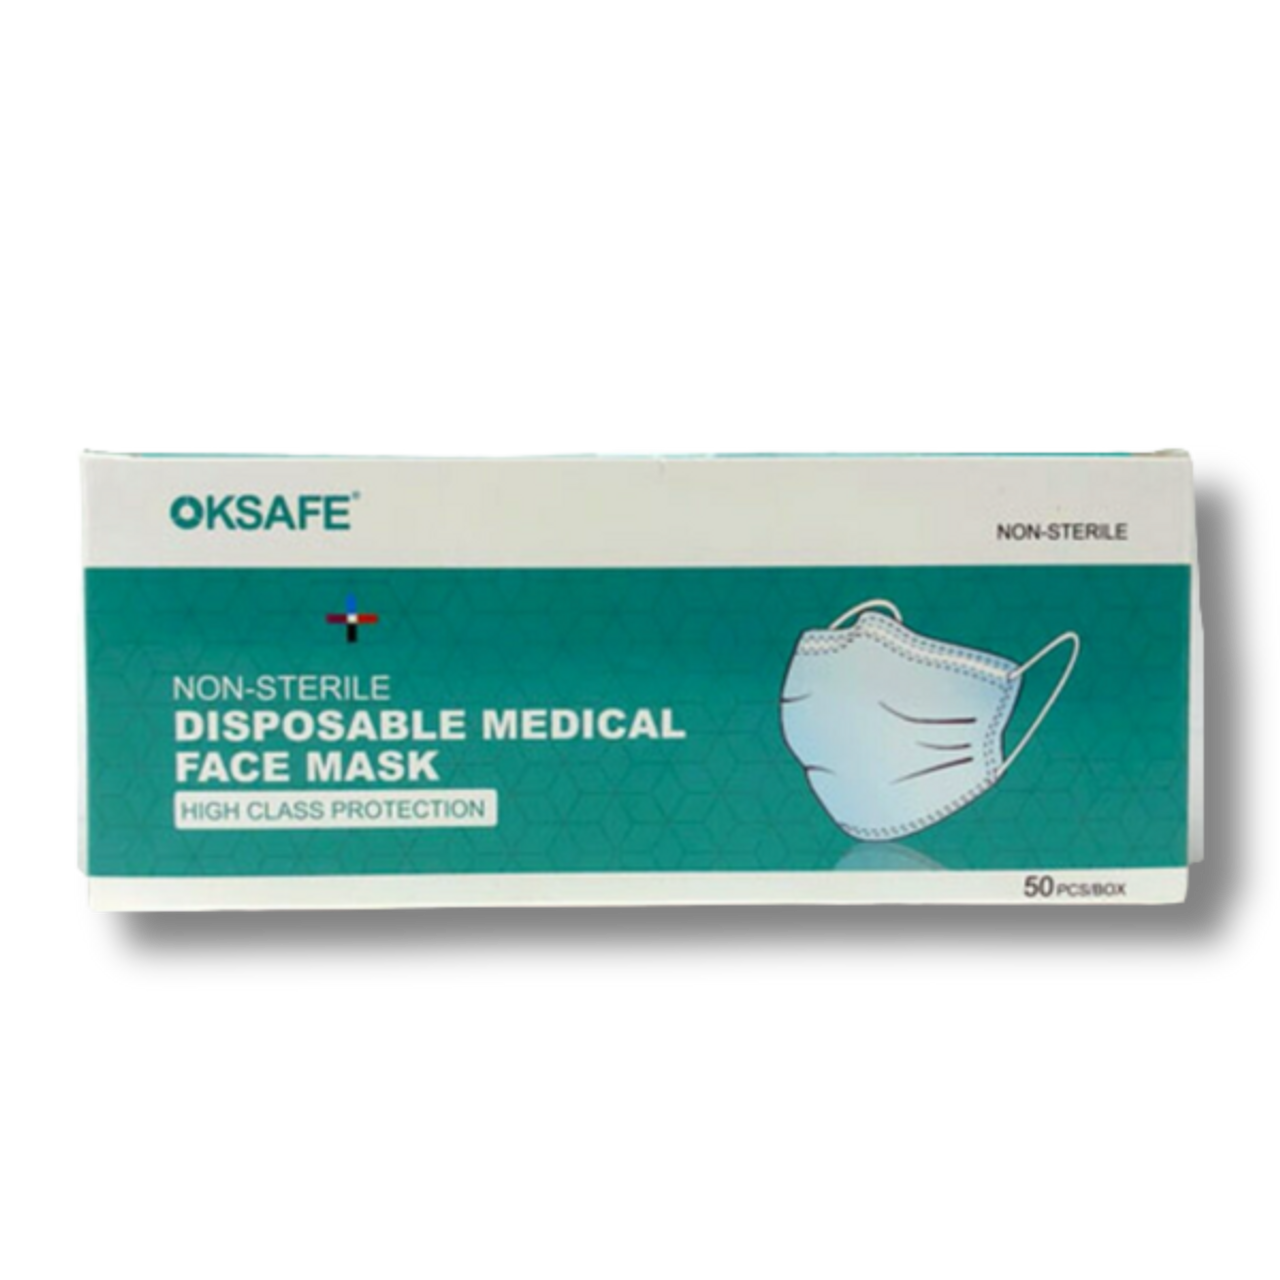 OKSAFE 3-Ply Disposable Face Masks - Box of 50  3-ply disposable masks help create a physical barrier between the mouth and nose of the wearer and potential contaminants in the immediate environment.   MATERIAL: Non-woven fabric and melt-blown filter paper. Ear loops: Latex free Nose piece: Covered adjustable aluminum   SPECIFICATIONS: All masks are made by factories that have FDA certificates of registration.  Product is not intended for use as a surgical mask or to provide liquid barrier protection. In-Stock and ready to ship from our Massachusetts, USA warehouses for quick delivery!  -- Ships out within 1 Business Day -- NO Returns on Protective Equipment --